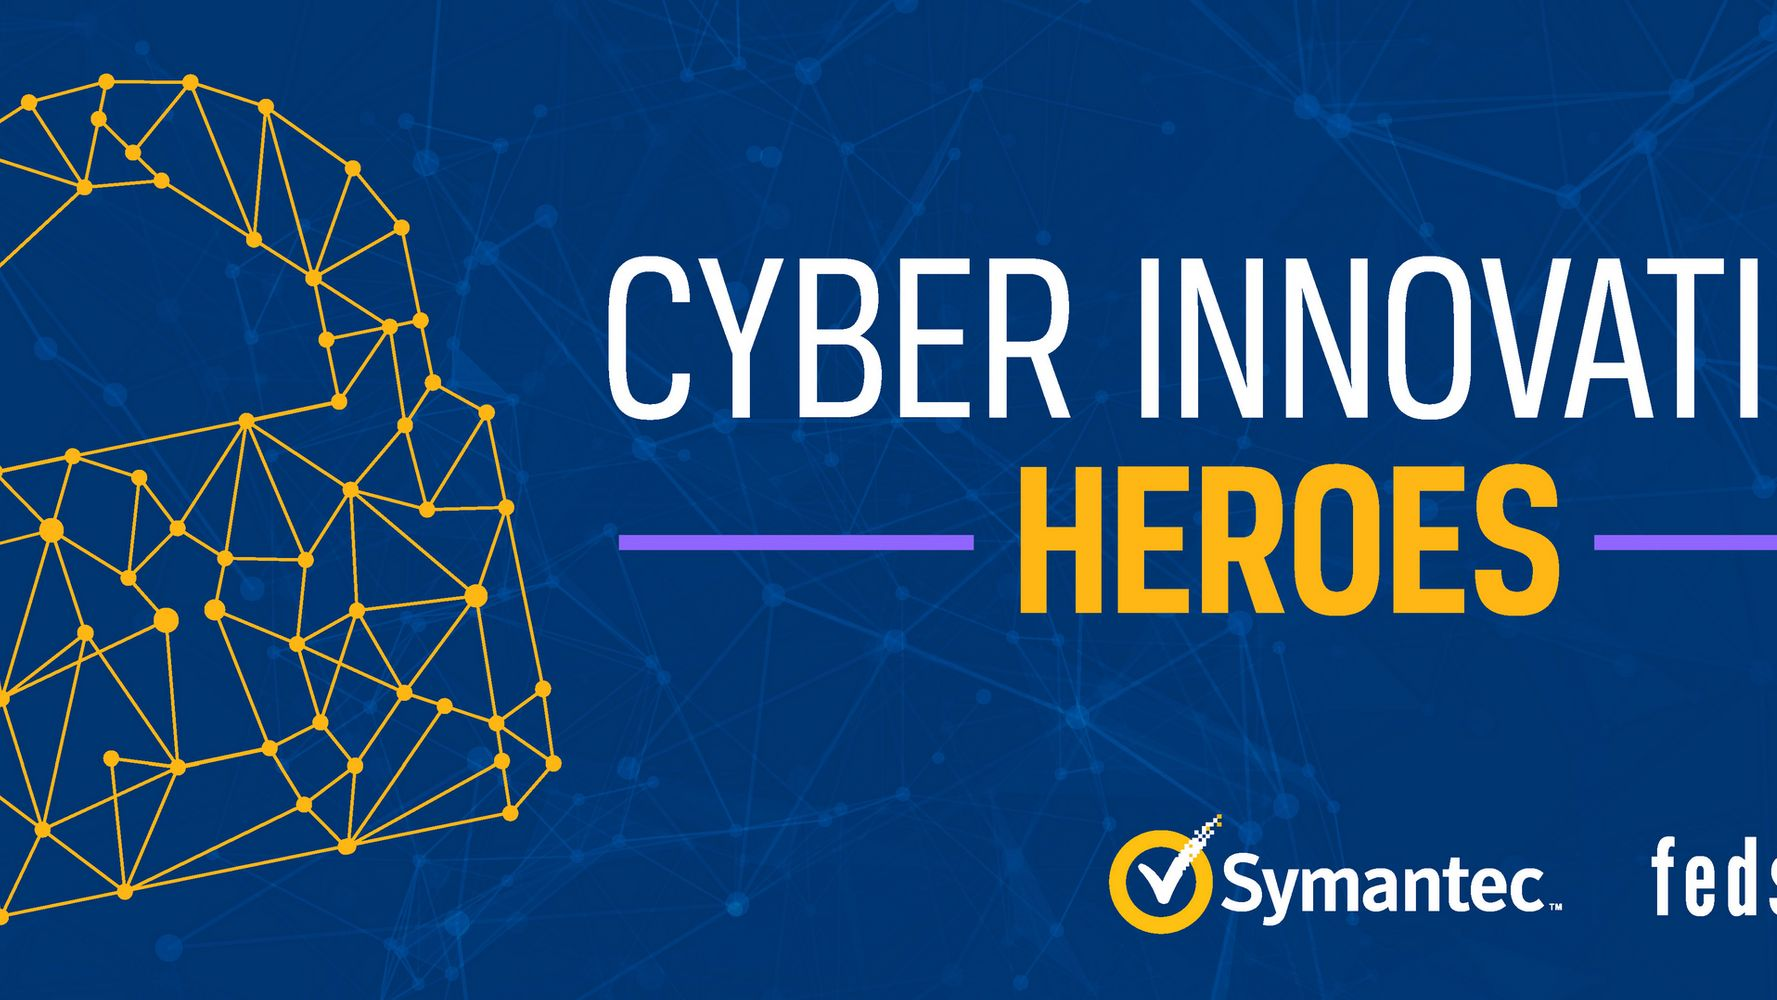 Fedscoop's Cyber Innovation Heroes: 10+ Insights from FBI, TSA, DHS